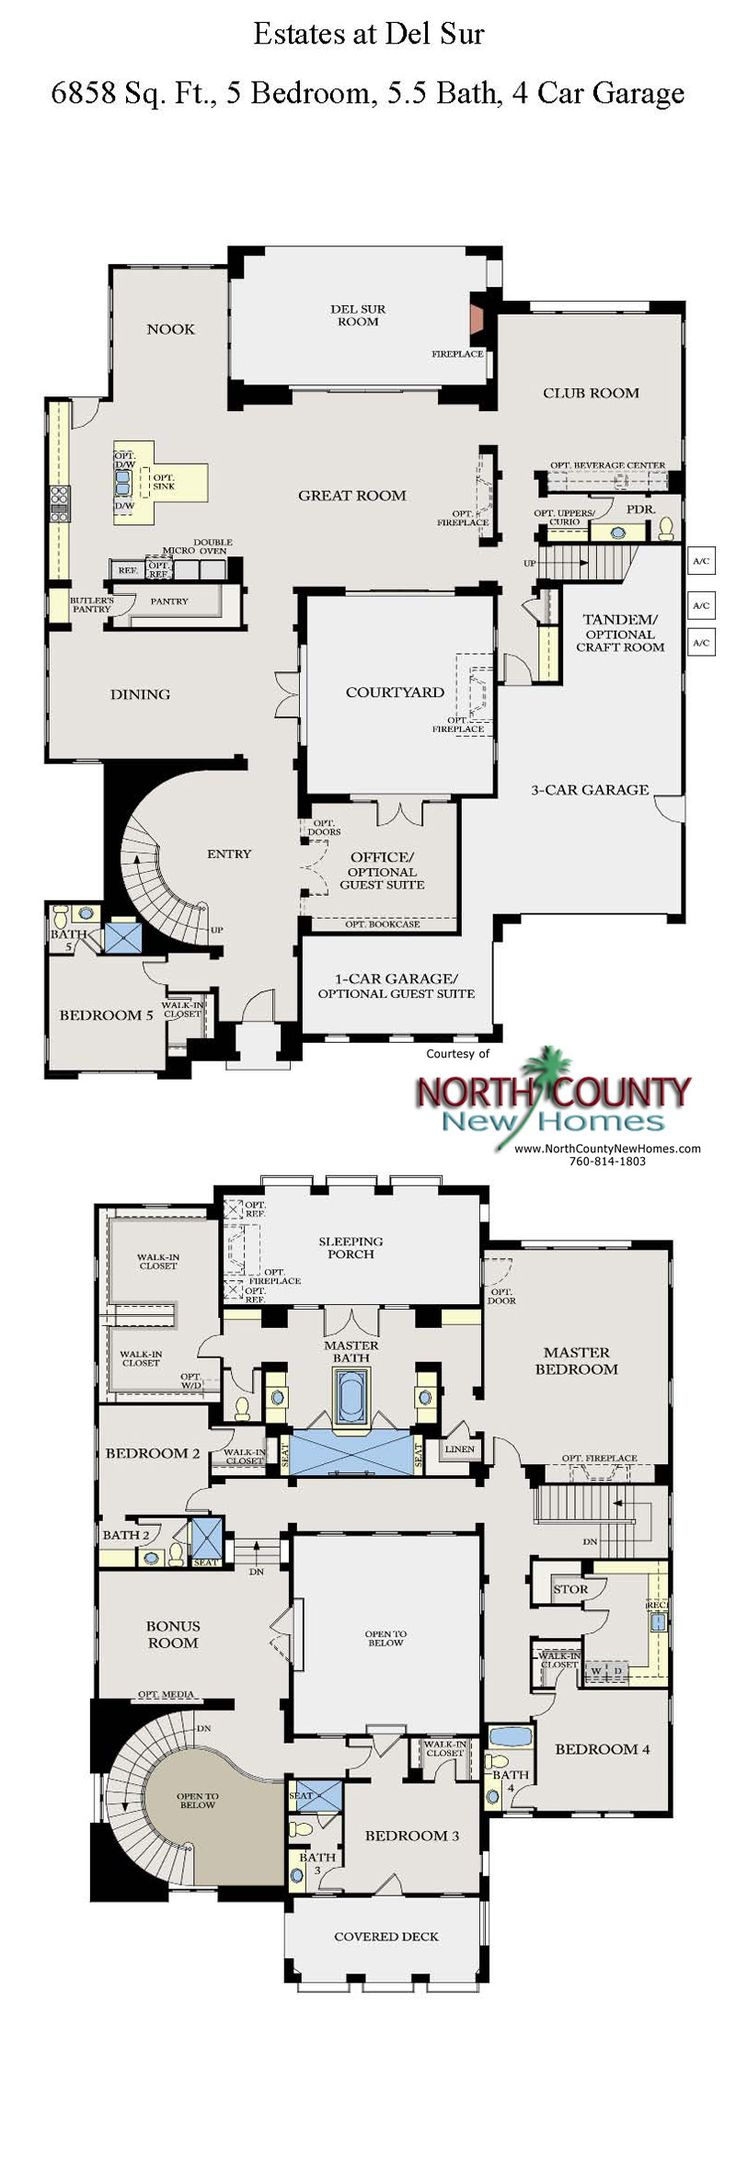 17 Best images about New Home Floor Plans in North County San